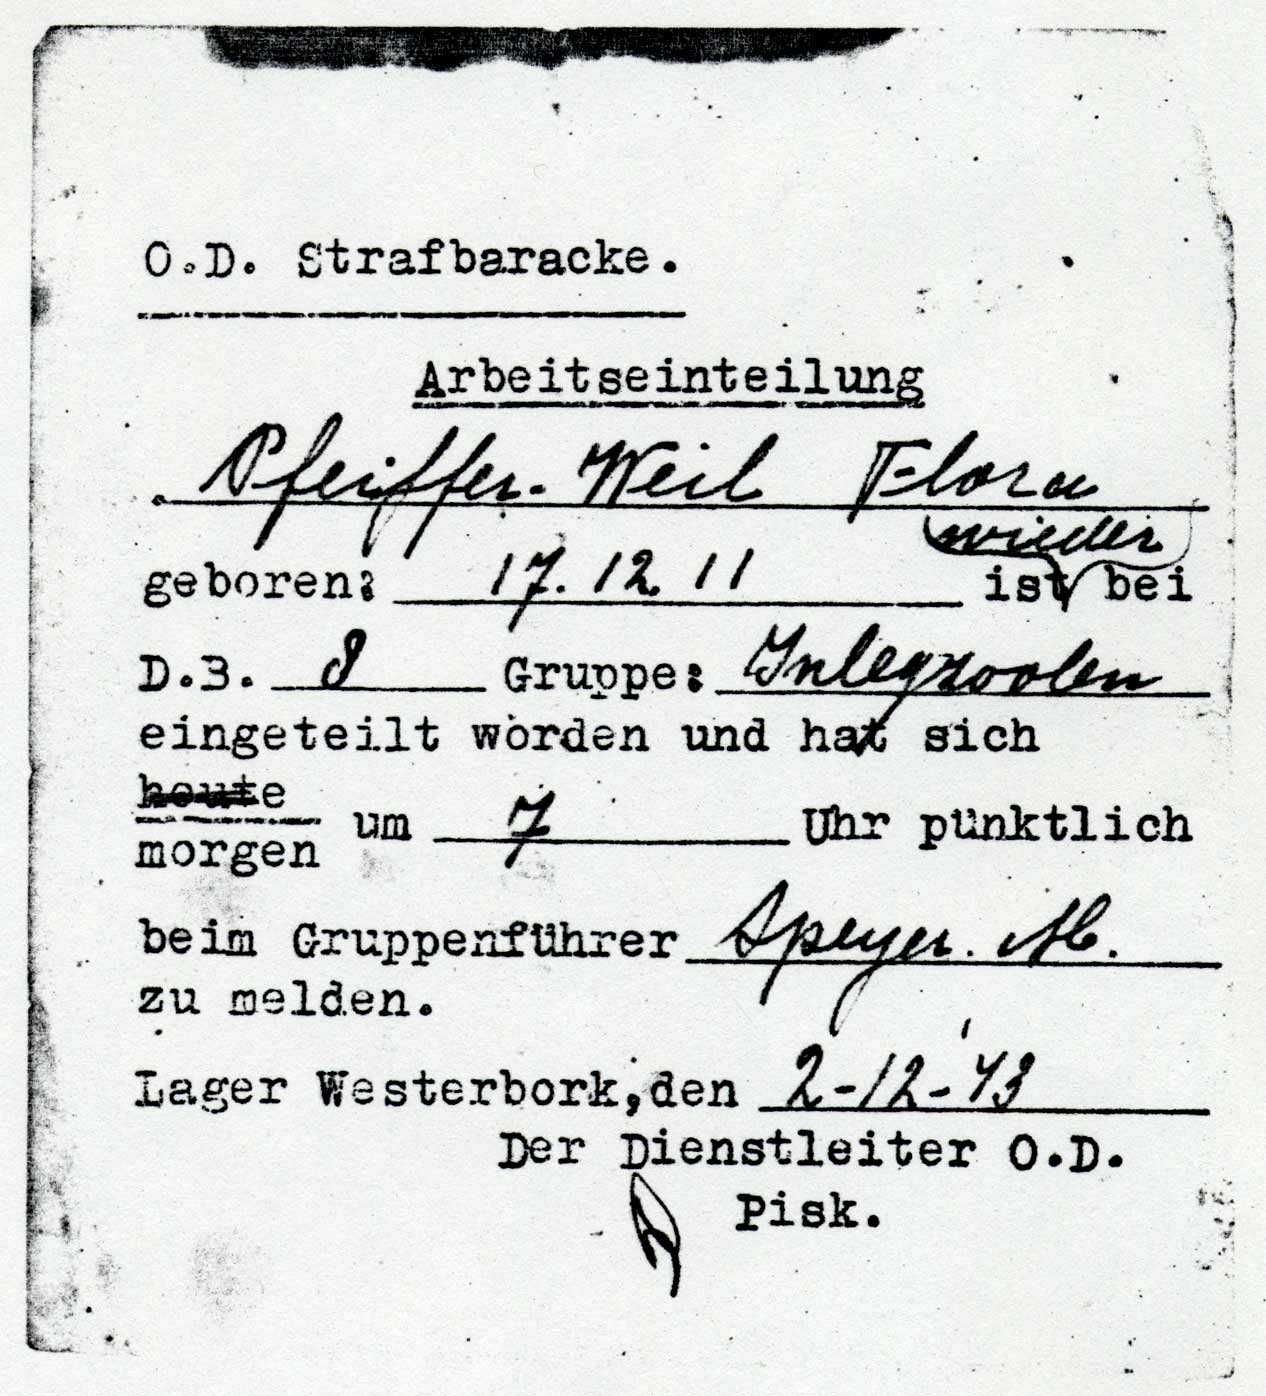 Work permit for Flora Pfeiffer to work in the punishment blocks, dated December 2, 1943. Jews capable of work had a better chance of staying alive.